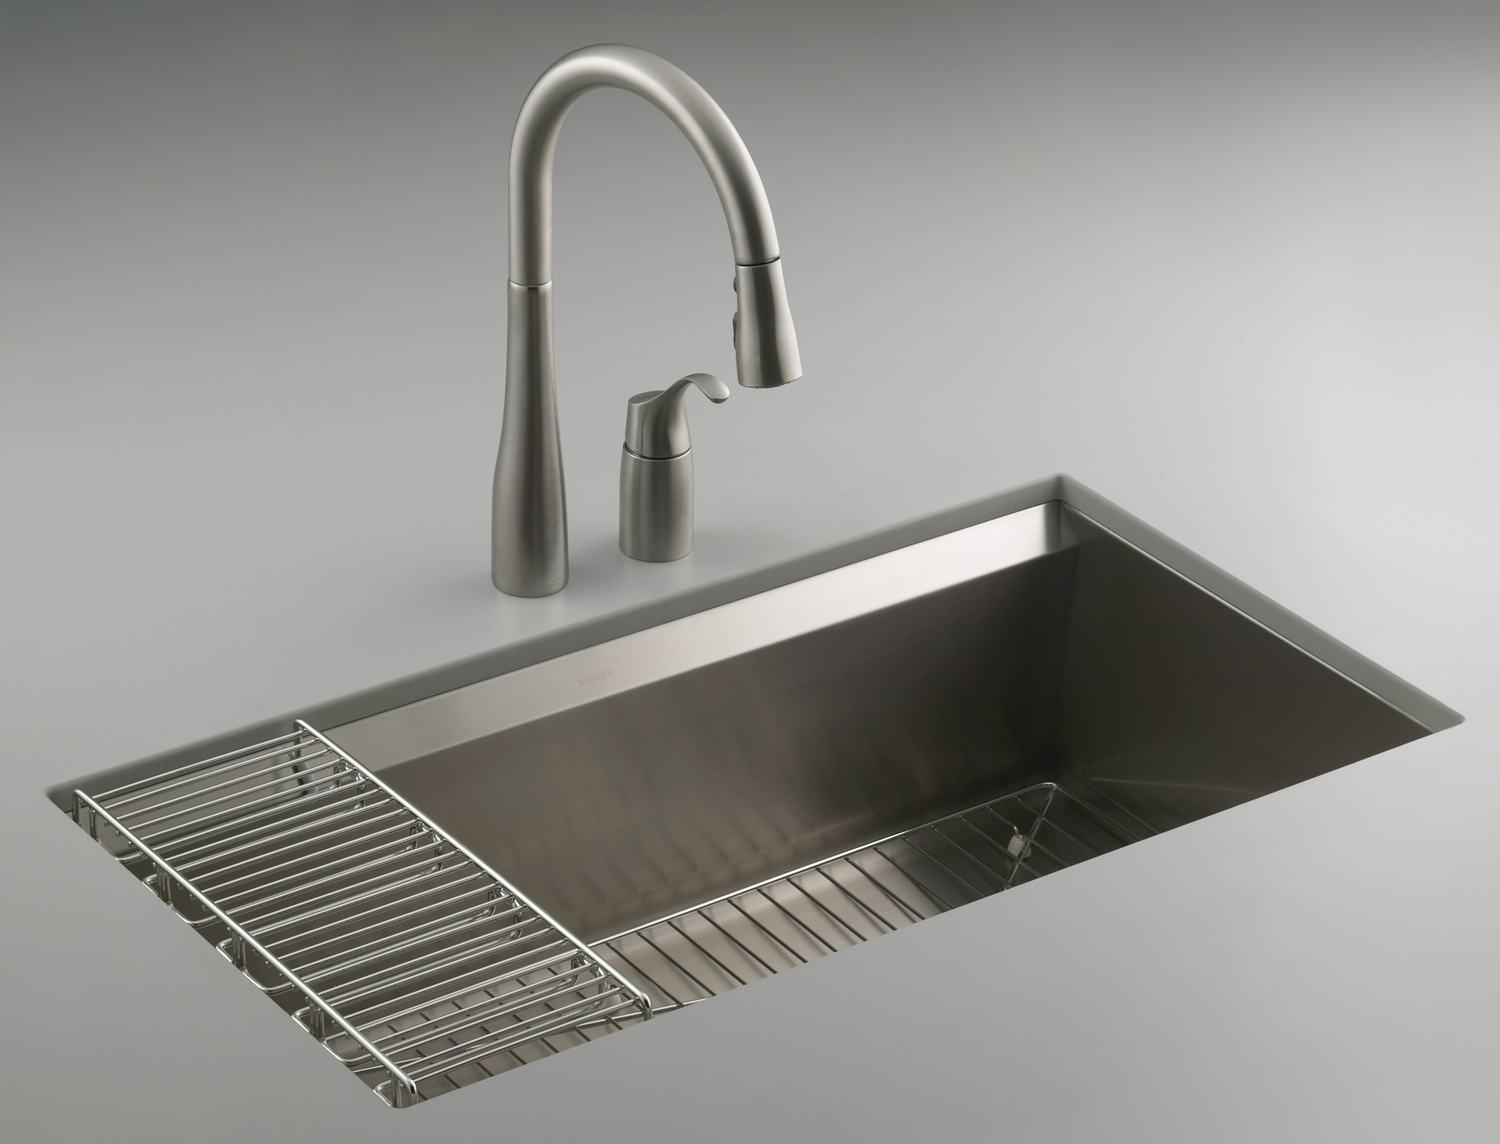 KOHLER K-3673-NA 8 Degree Large Single Kitchen Sink